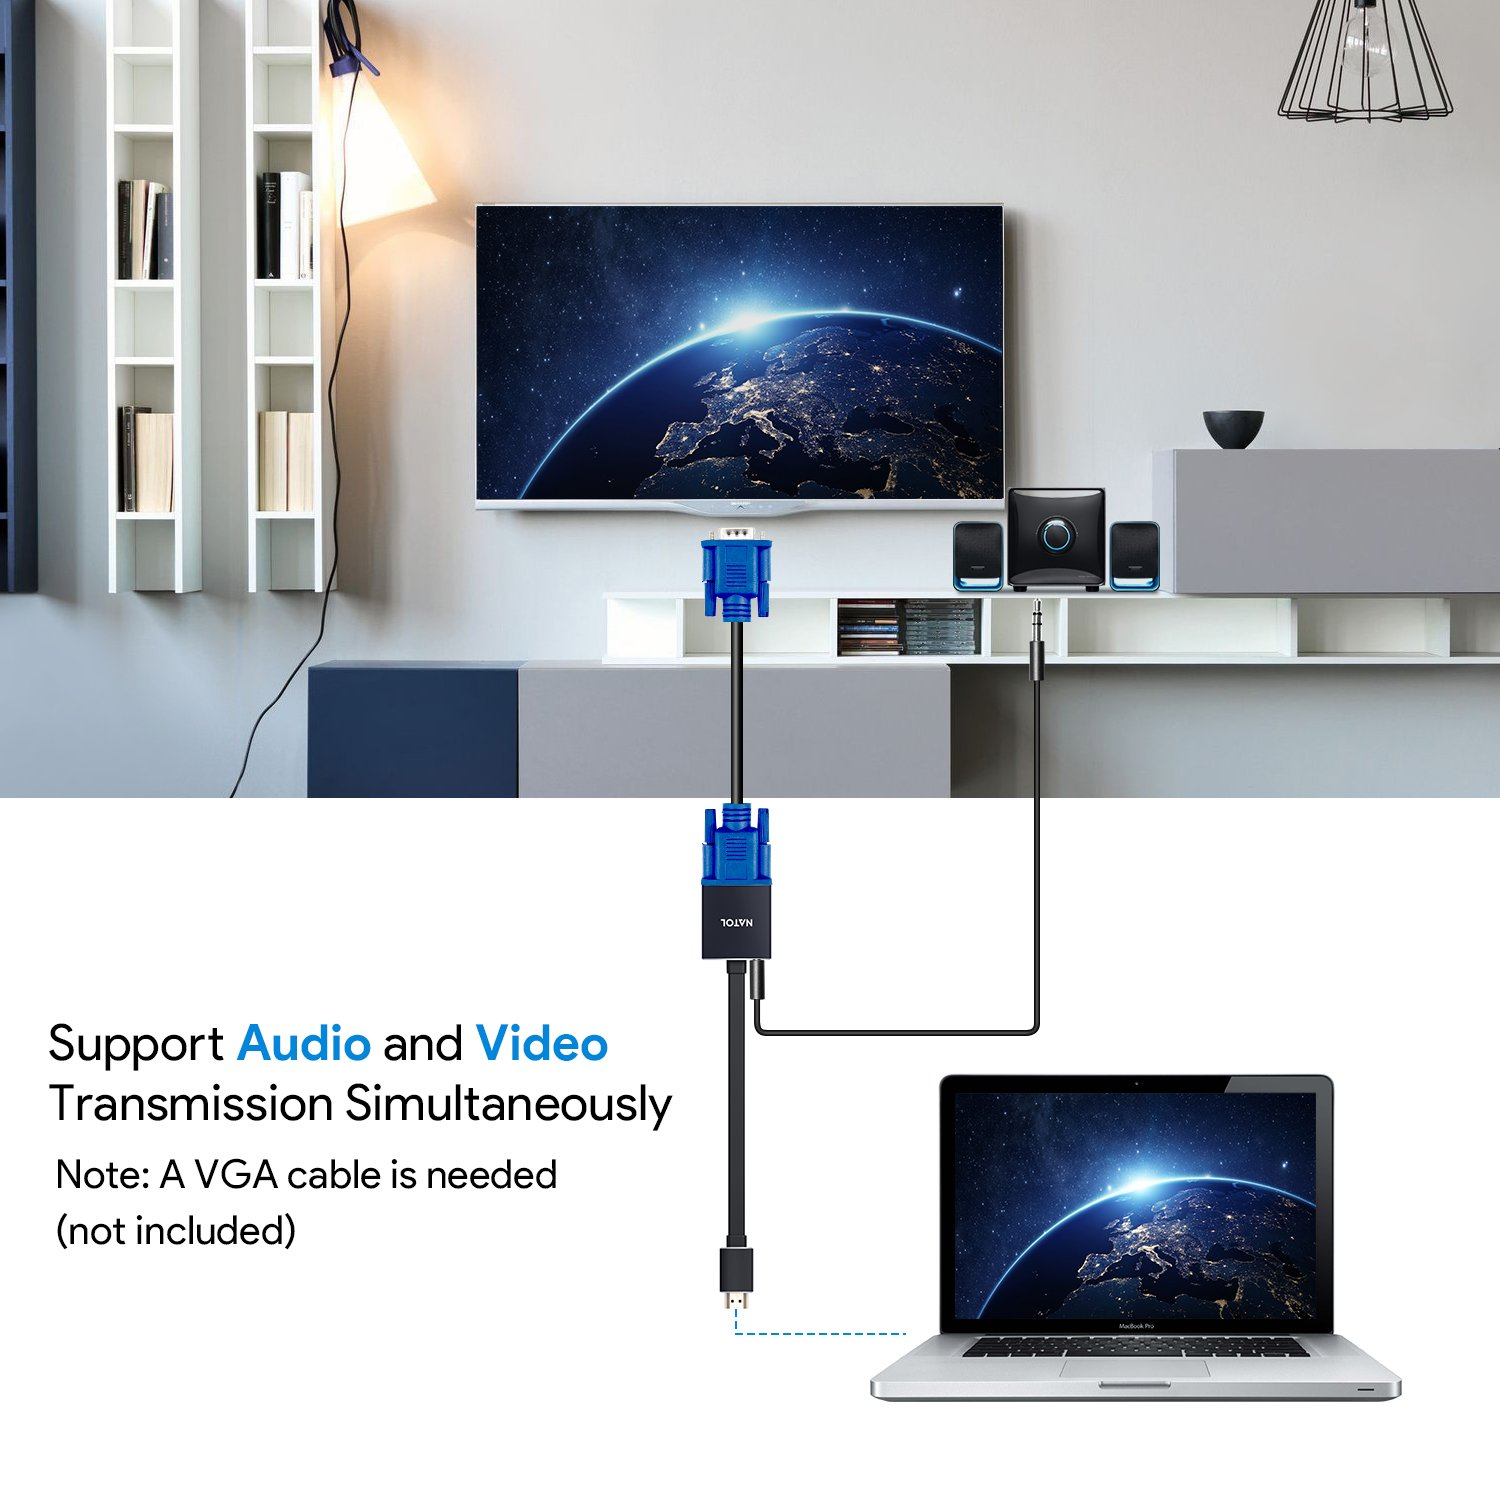 HDMI to VGA Adapter, NATOL HDMI to VGA Connector 1080P with Premium Aluminum Case, Audio Jack and Power Port for PC, Laptop, Ultrabook, Raspberry Pi, Chromebook